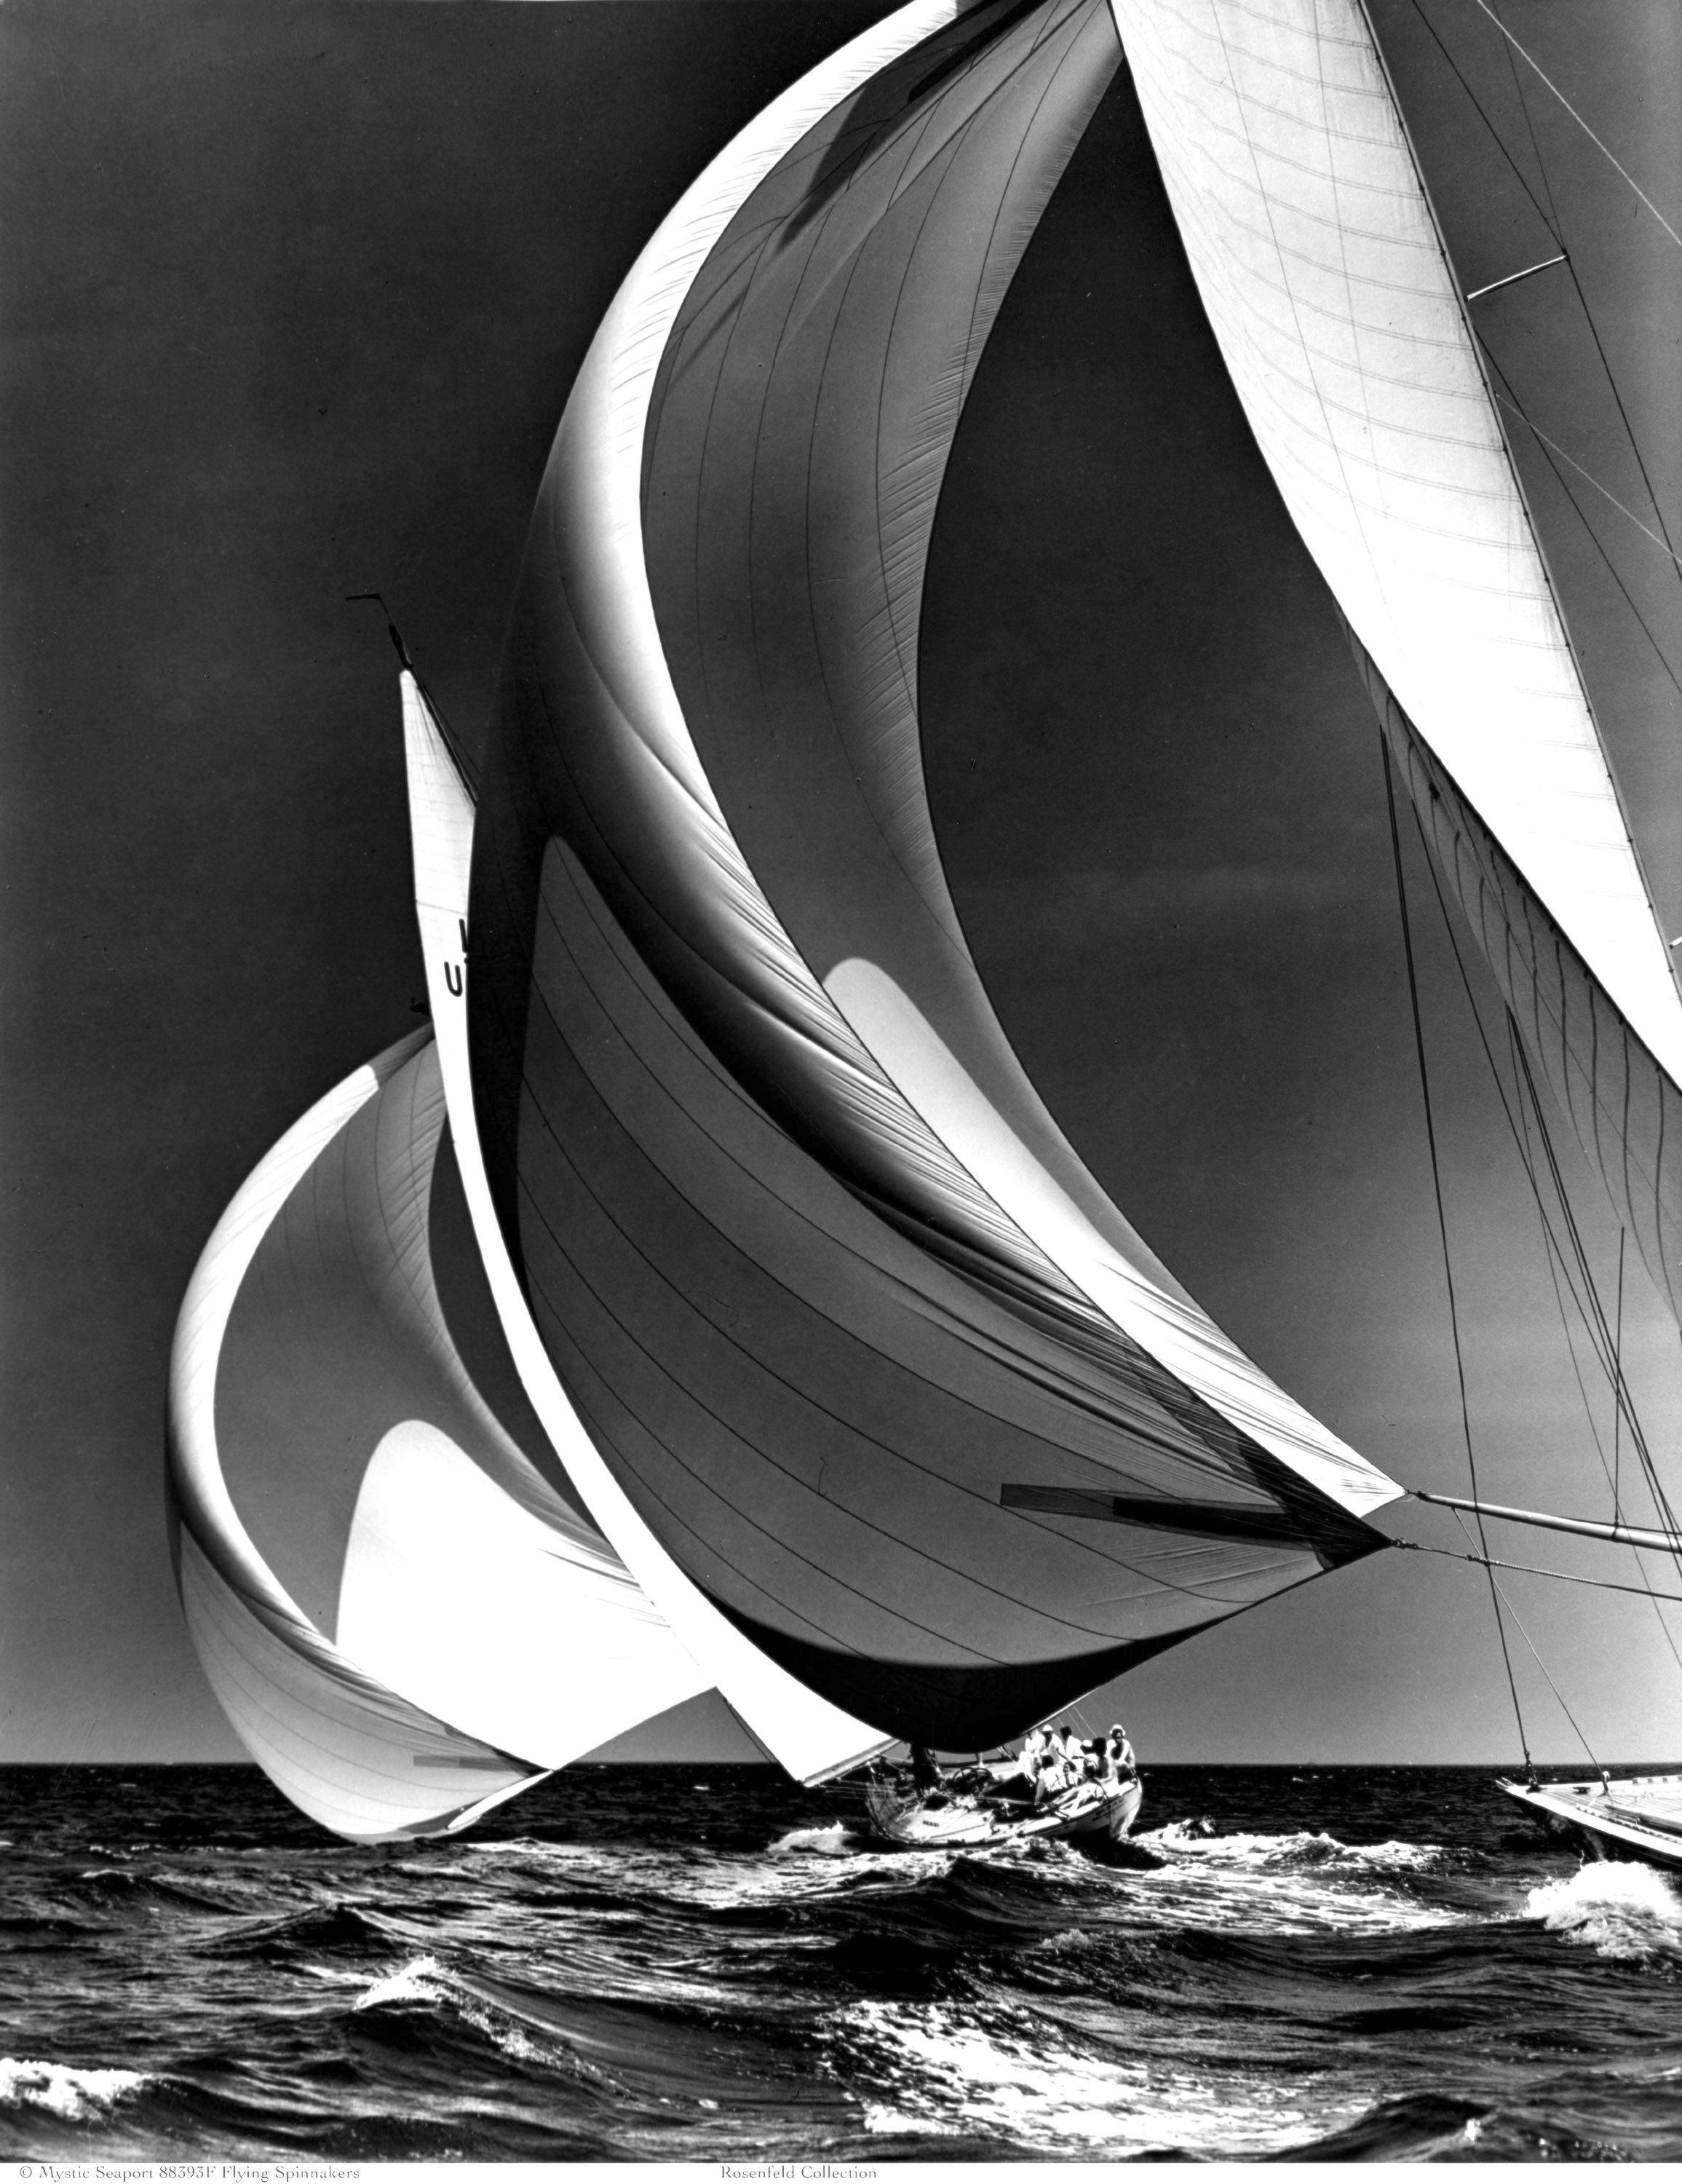 Flying Spinnakers (C) Mystic Seaport, Rosenfeld Collection